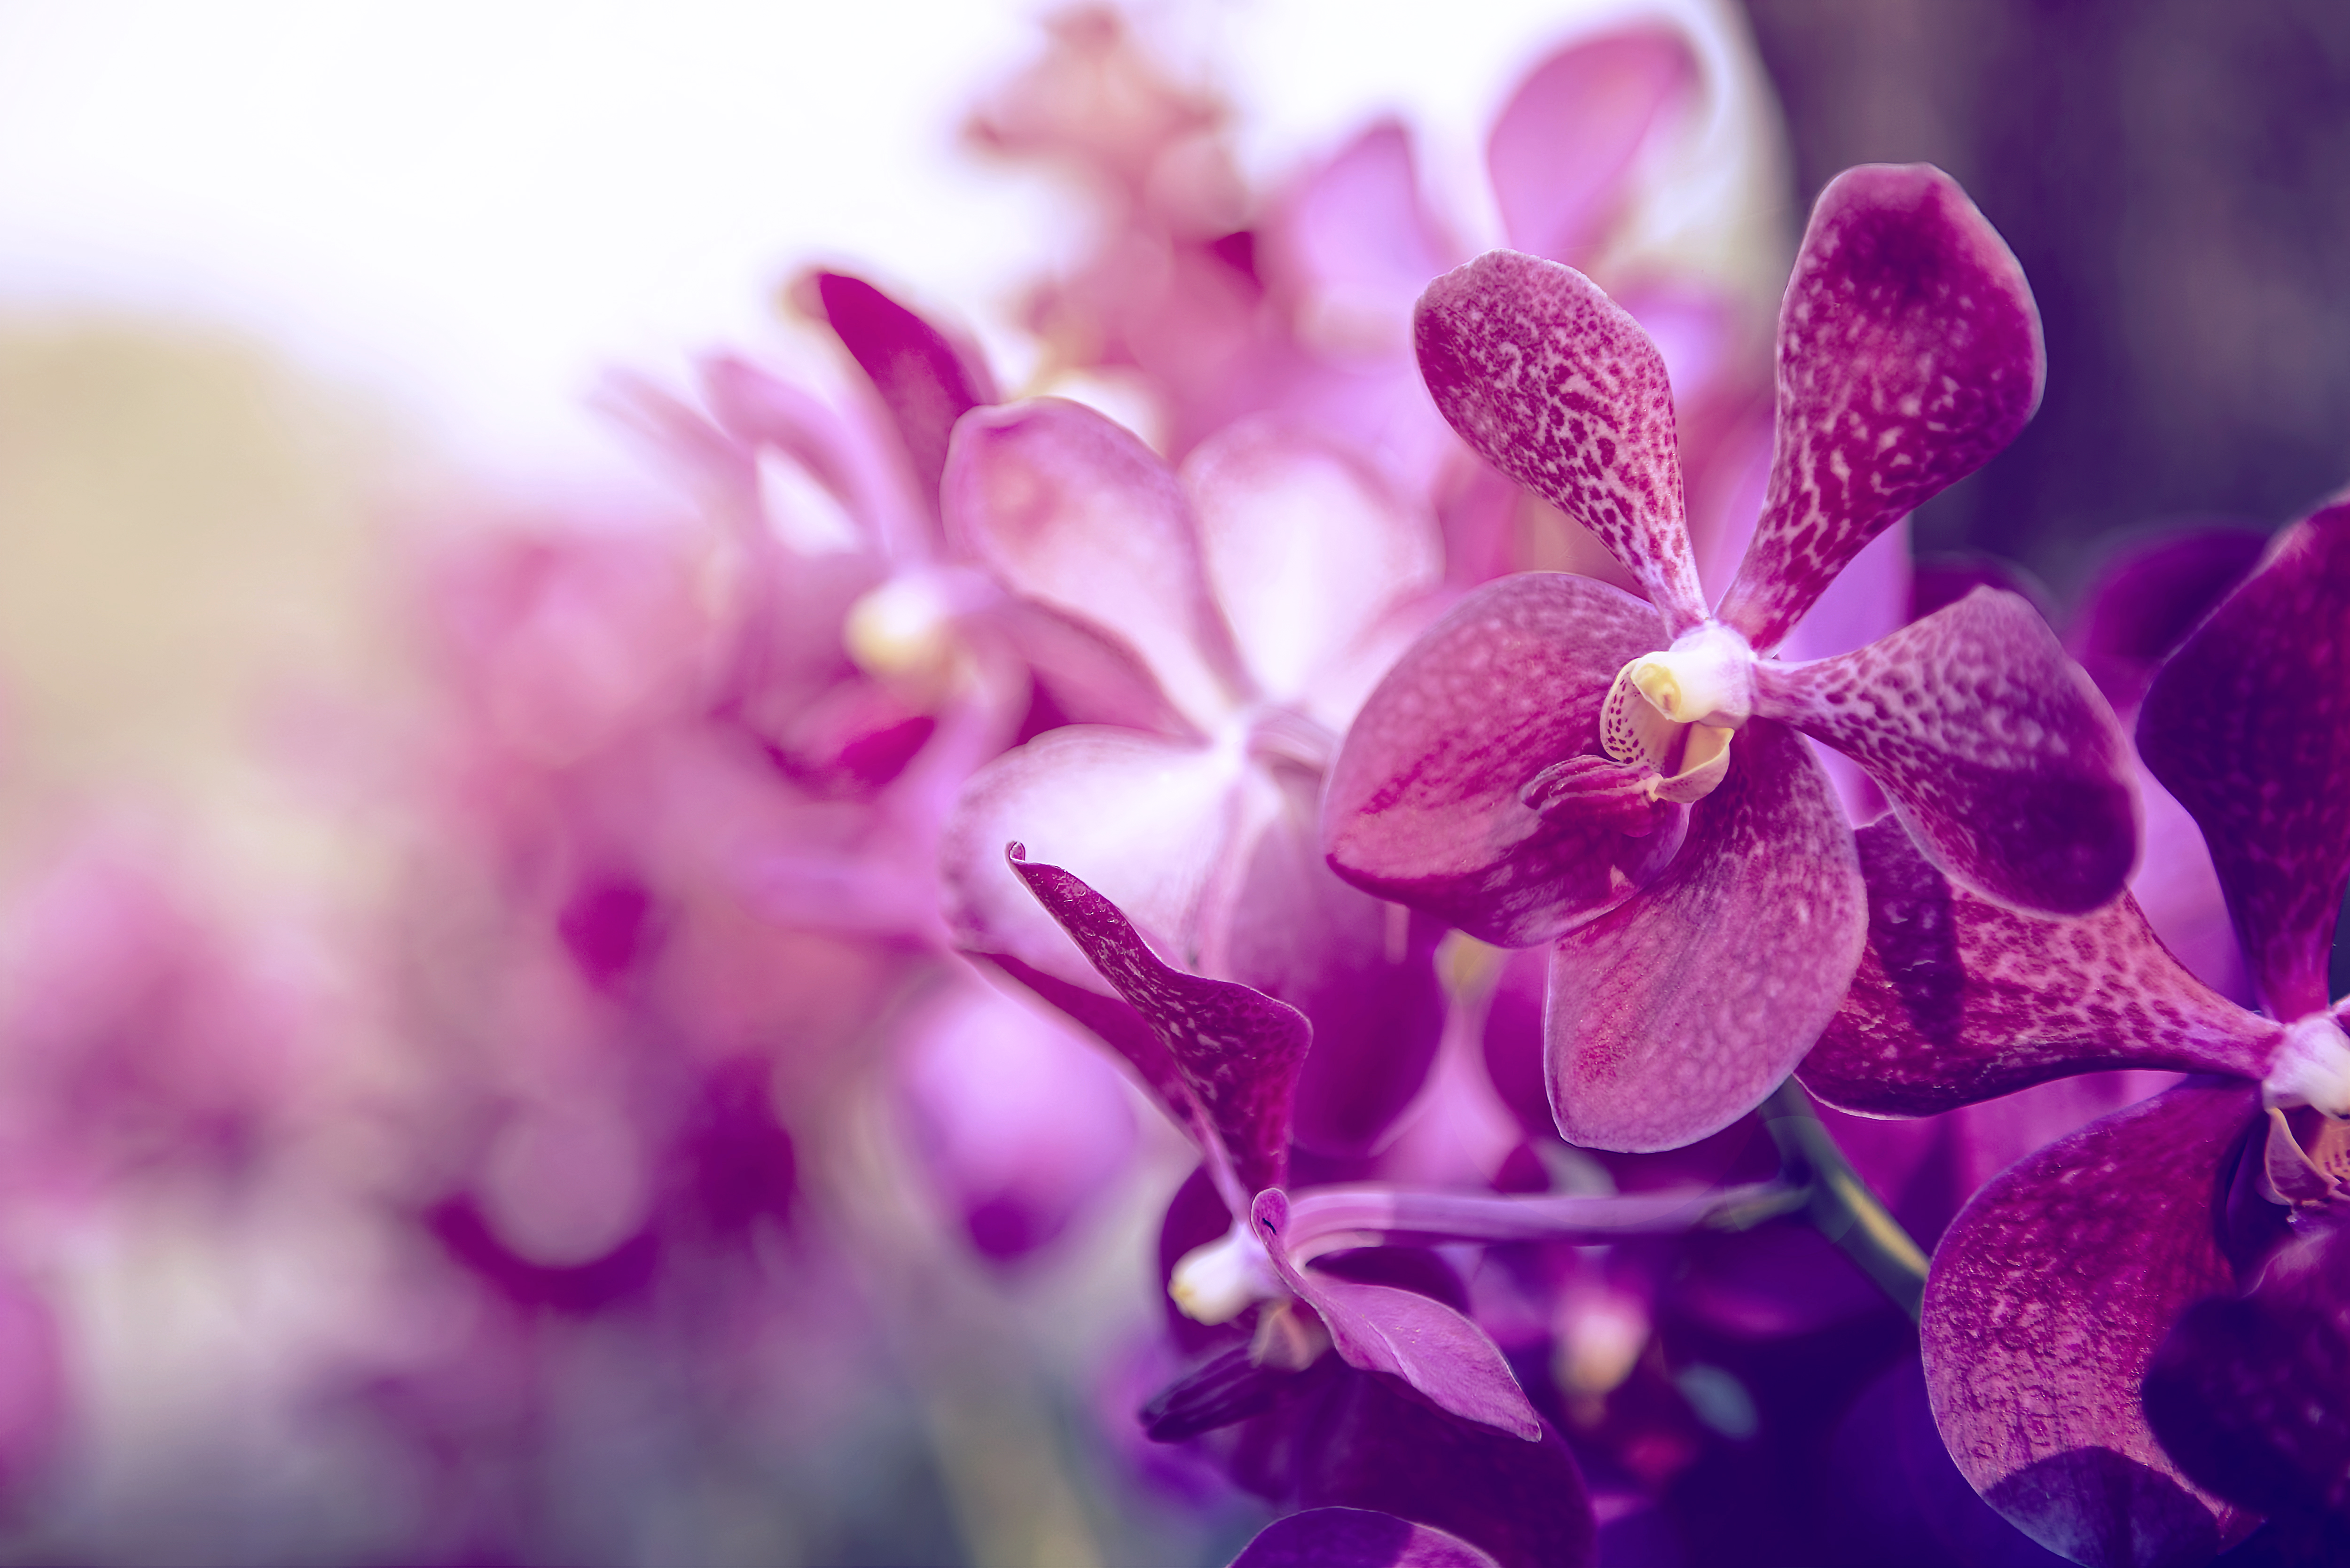 My Orchid Is Wilted: What Do I Do? | Home Guides | SF Gate